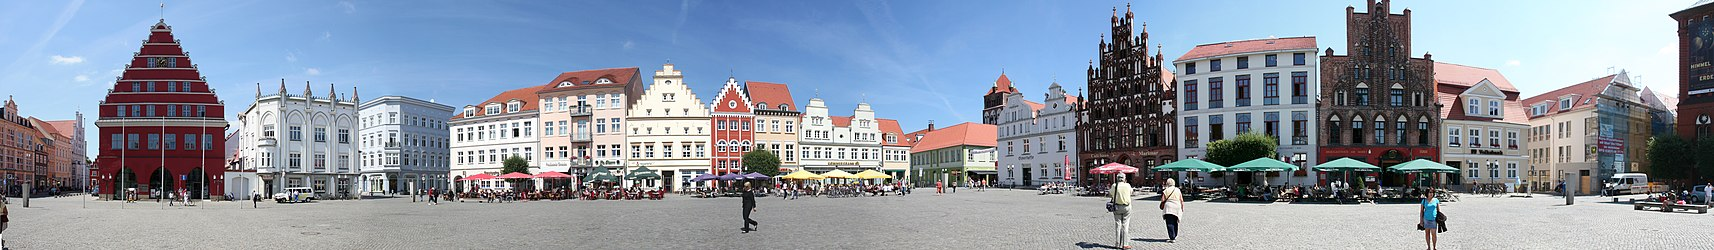 The central market square (Marktplatz)